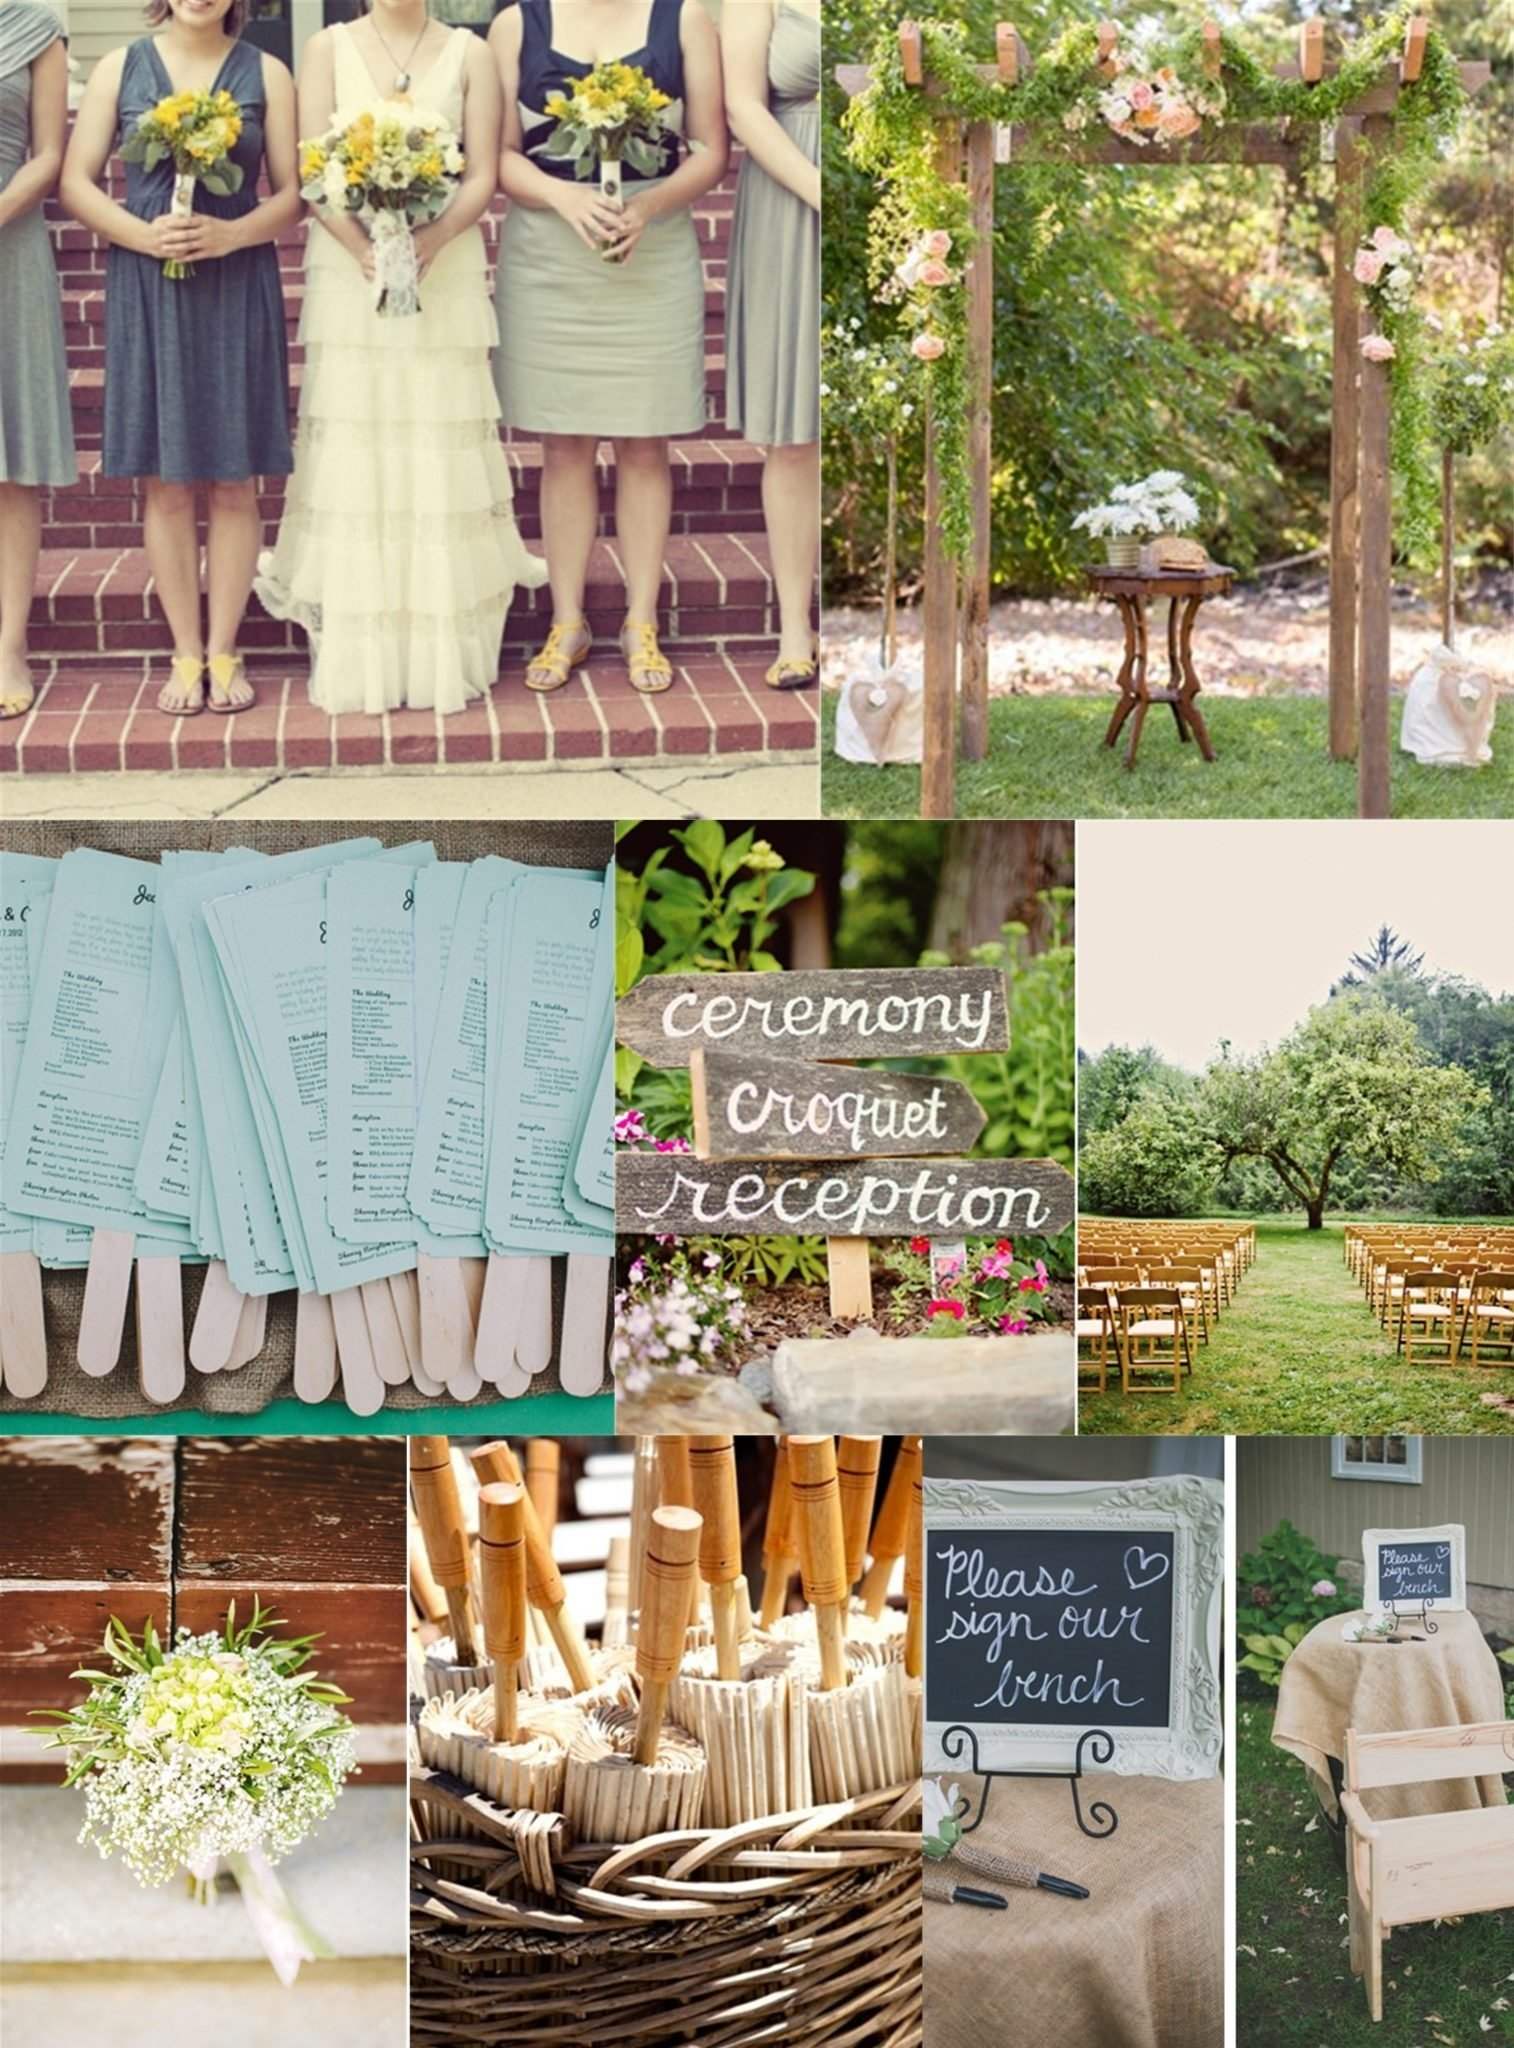 10 Famous Wedding On A Budget Ideas essential guide to a backyard wedding on a budget 3